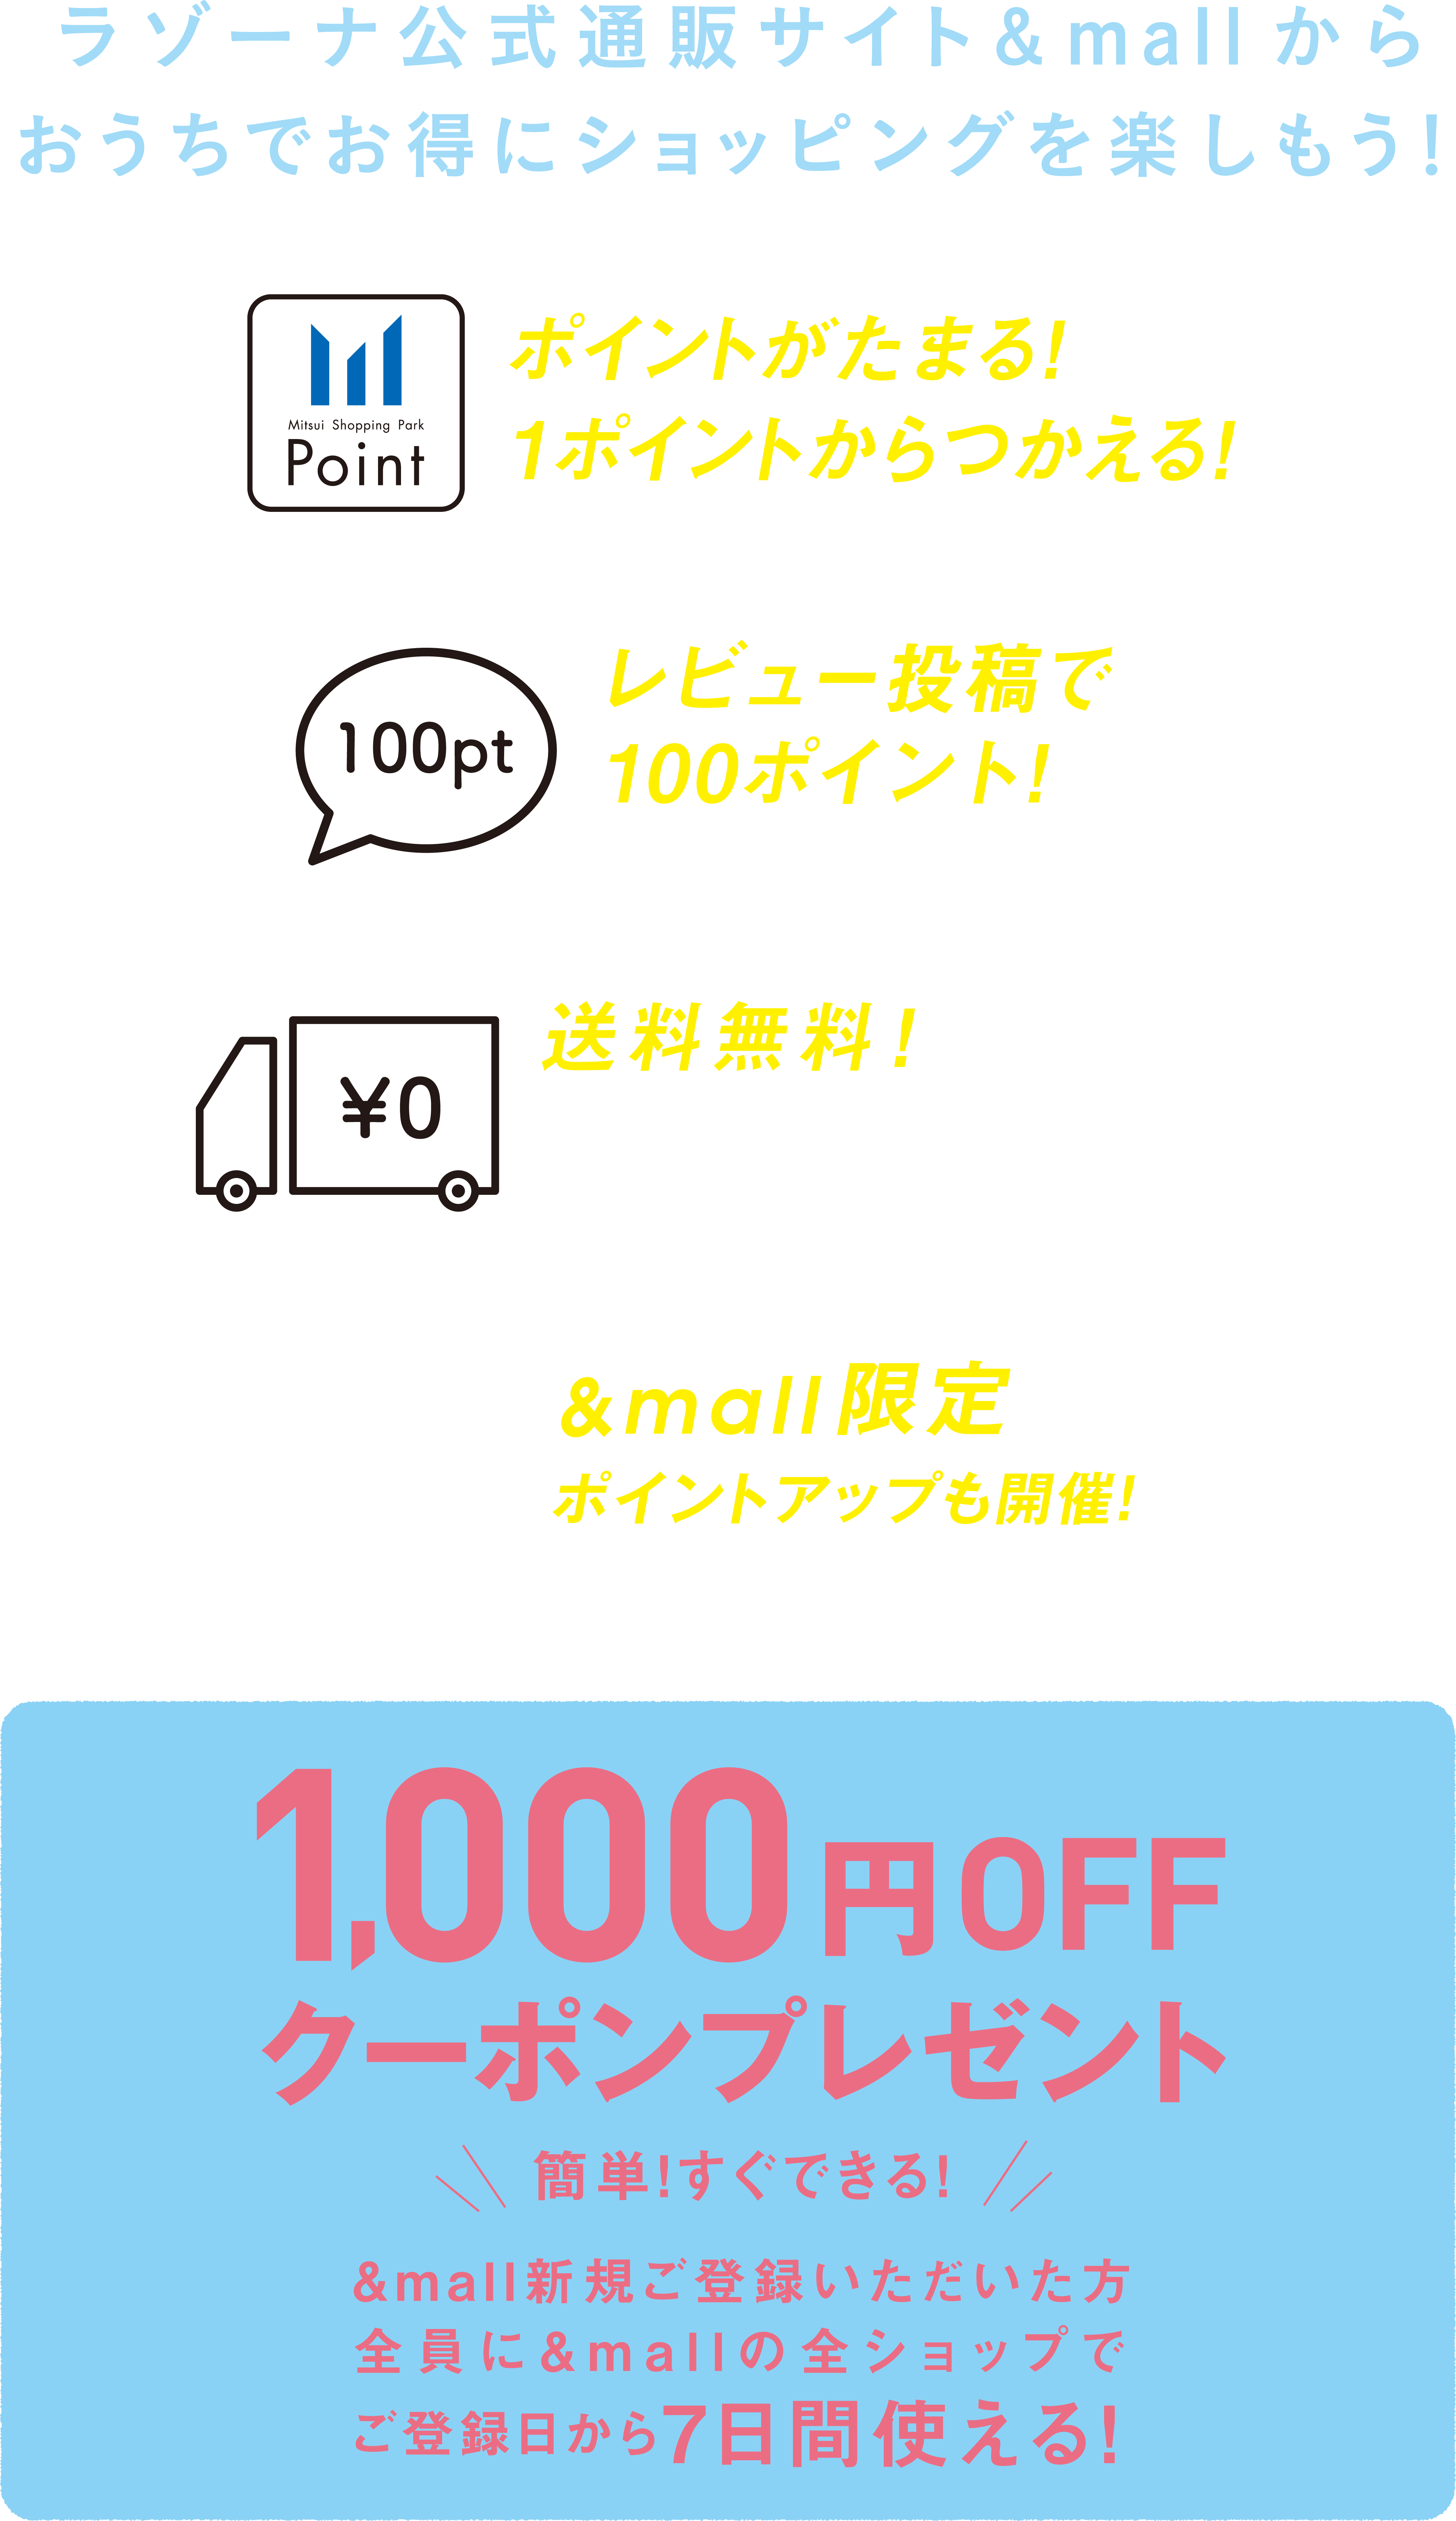 Let's enjoy shopping in discount in house from razona formula mail order site &mall. 1, the points collect! It is usable from 1 point! It is 100 points by 2, review contribution! ※In the case of the purchase, 3 is free shipping 500 yen (tax-included) or more! ※1 Shops 3,000 yen (tax-included) or more in the case of the purchase ※4, $mall-limited point up which product excluding is partly are holding! Simply! We can do it immediately! It is usable in all Shops of &mall to all the people who had &mall new fotou six for seven days from registration day! 1,000 yen OFF coupon present